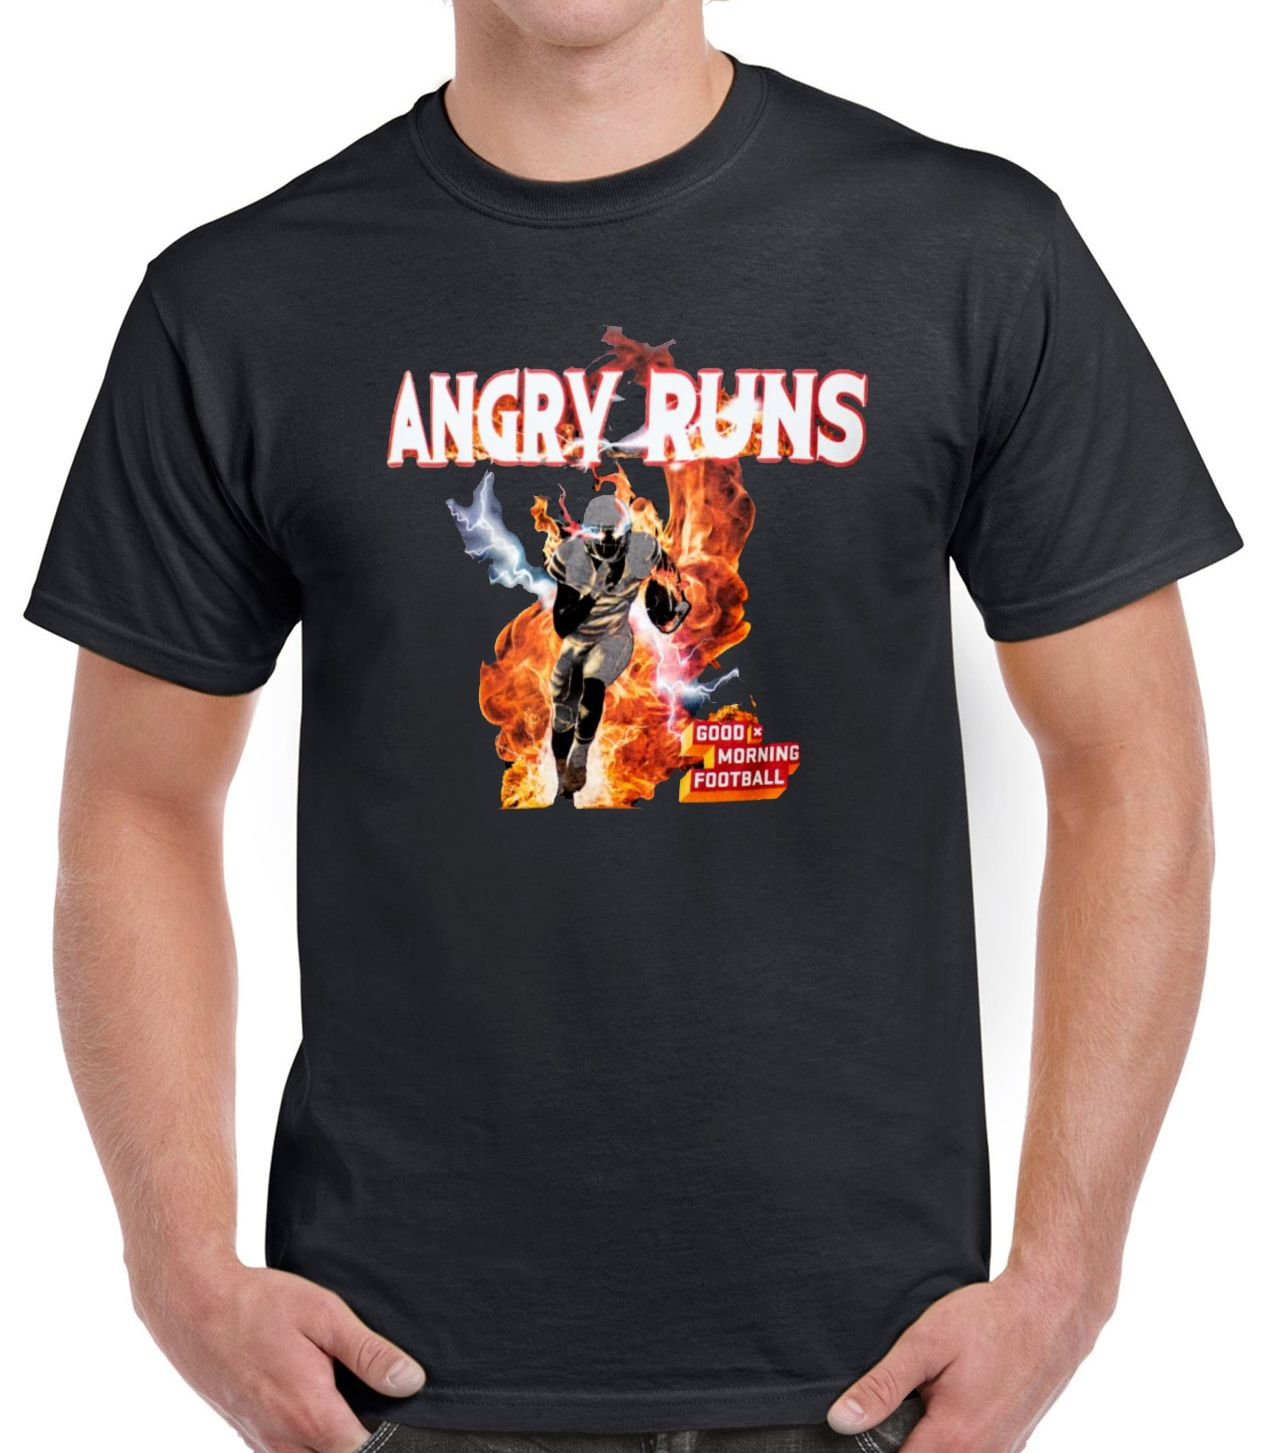 Angry Runs T-shirt Good Morning Football Shirt